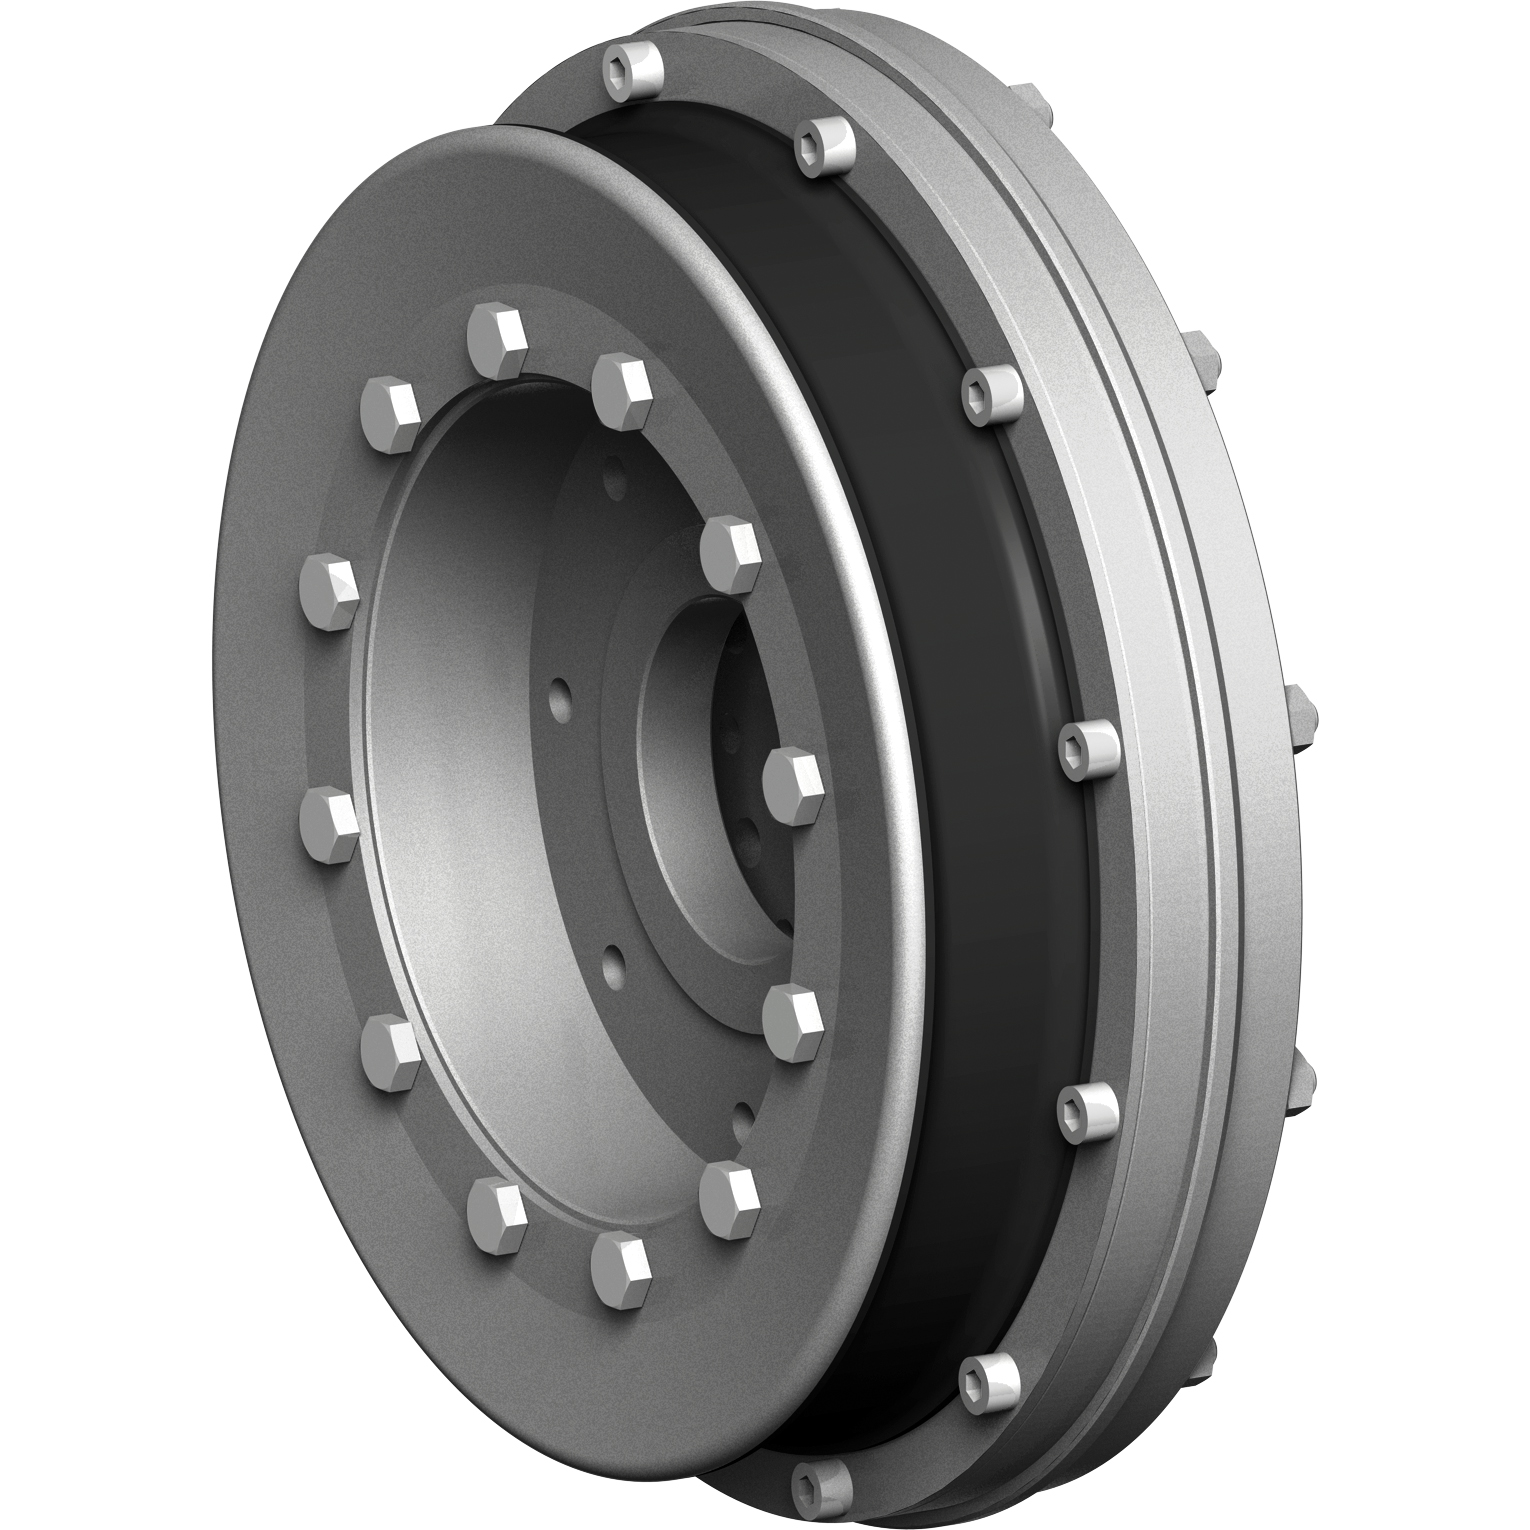 Highly Flexible Couplings - VULKARDAN L